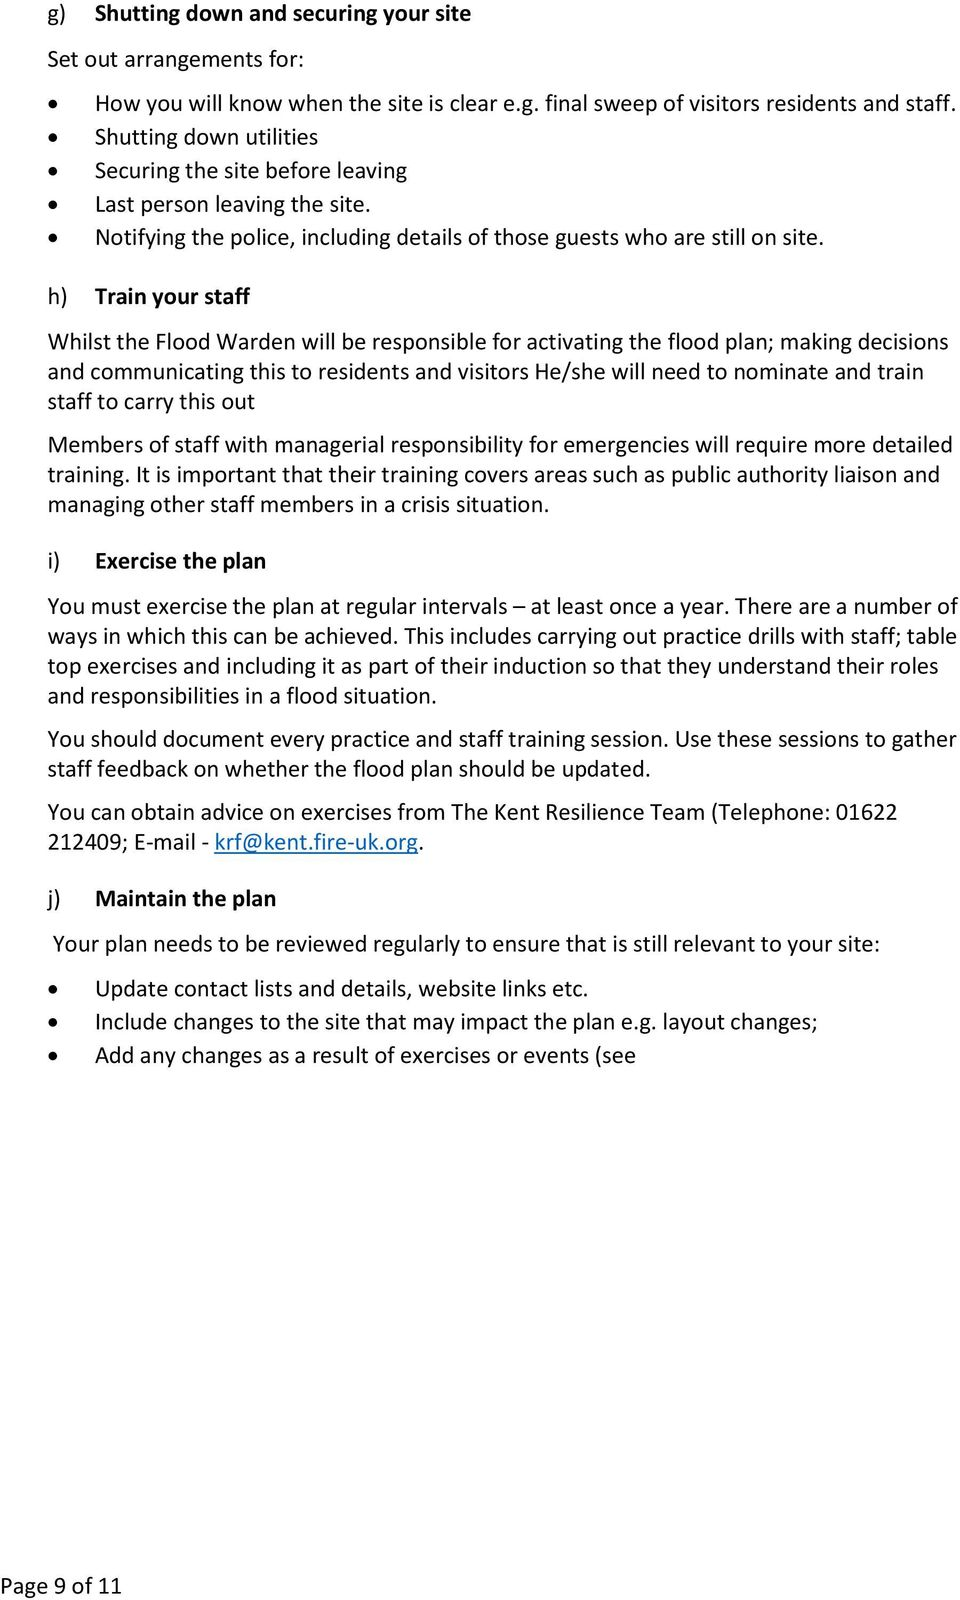 Train your staff Whilst the Flood Warden will be responsible for activating the flood plan; making decisions and communicating this to residents and visitors He/she will need to nominate and train